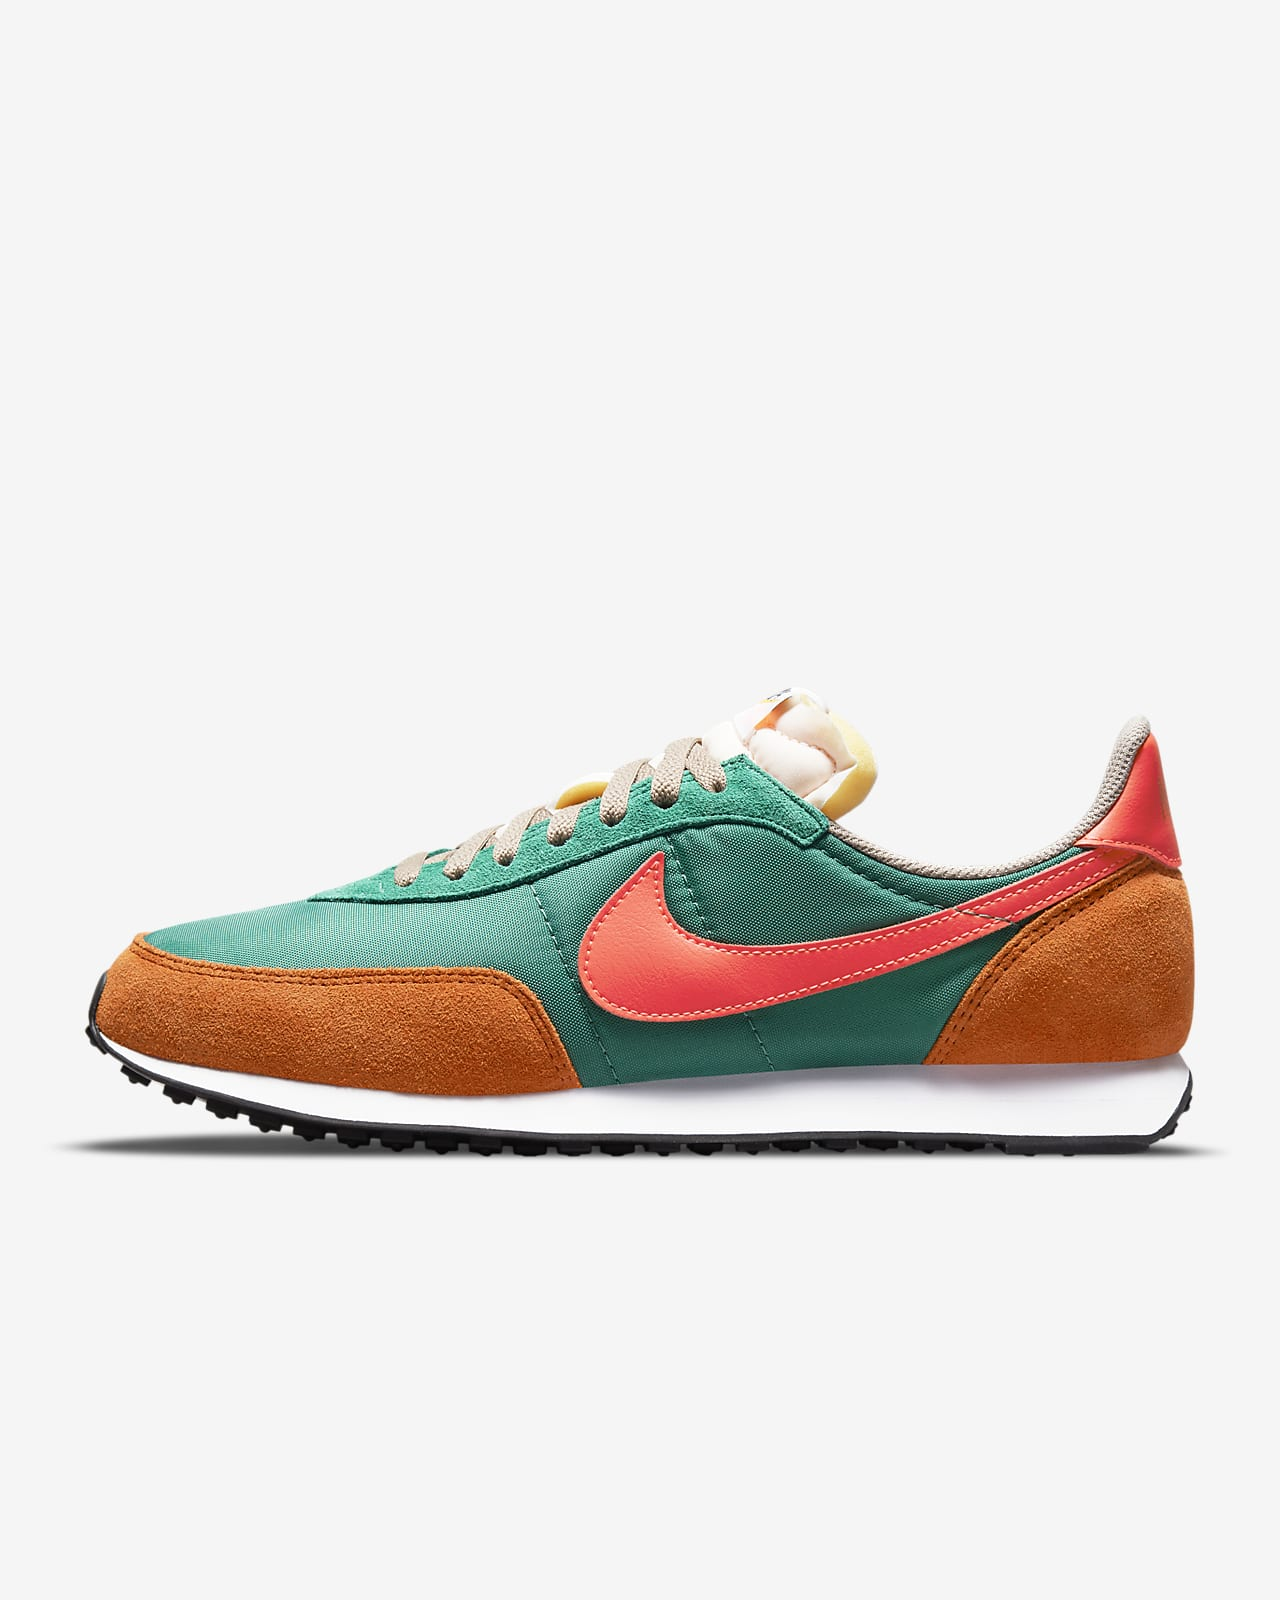 Chaussure Nike Waffle Trainer 2 SP pour Homme